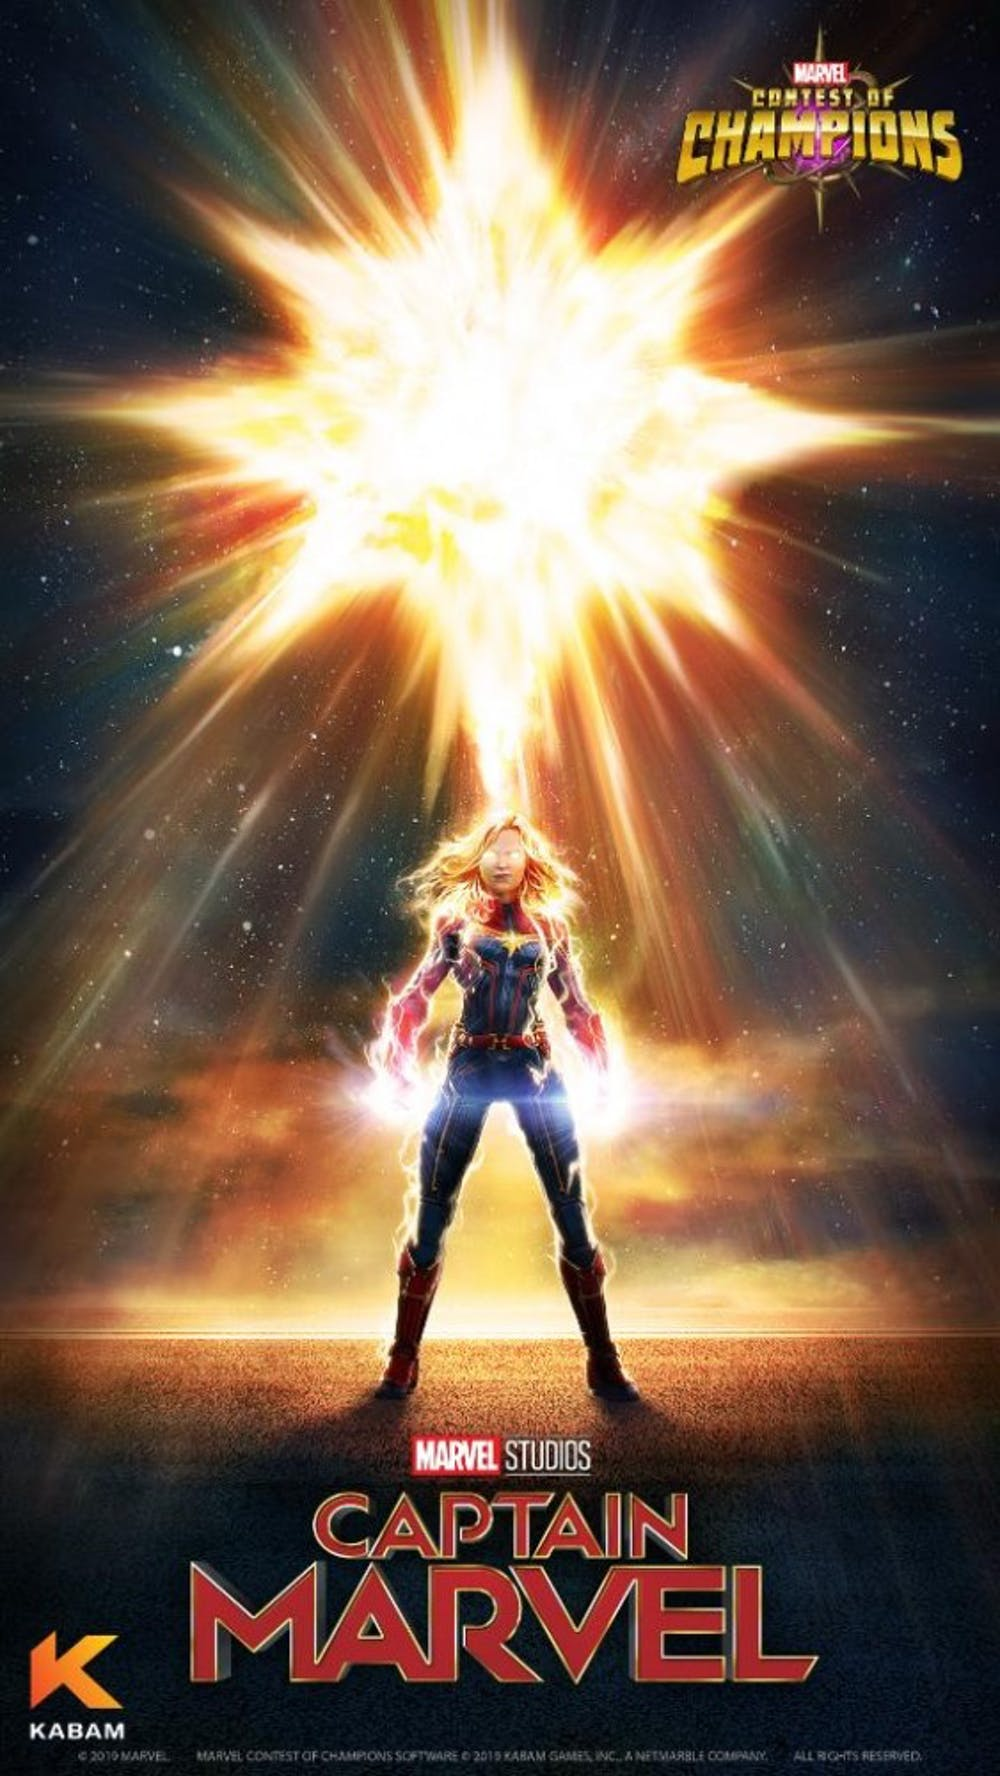 Film Review: 'Captain Marvel' propels the MCU into a different universe